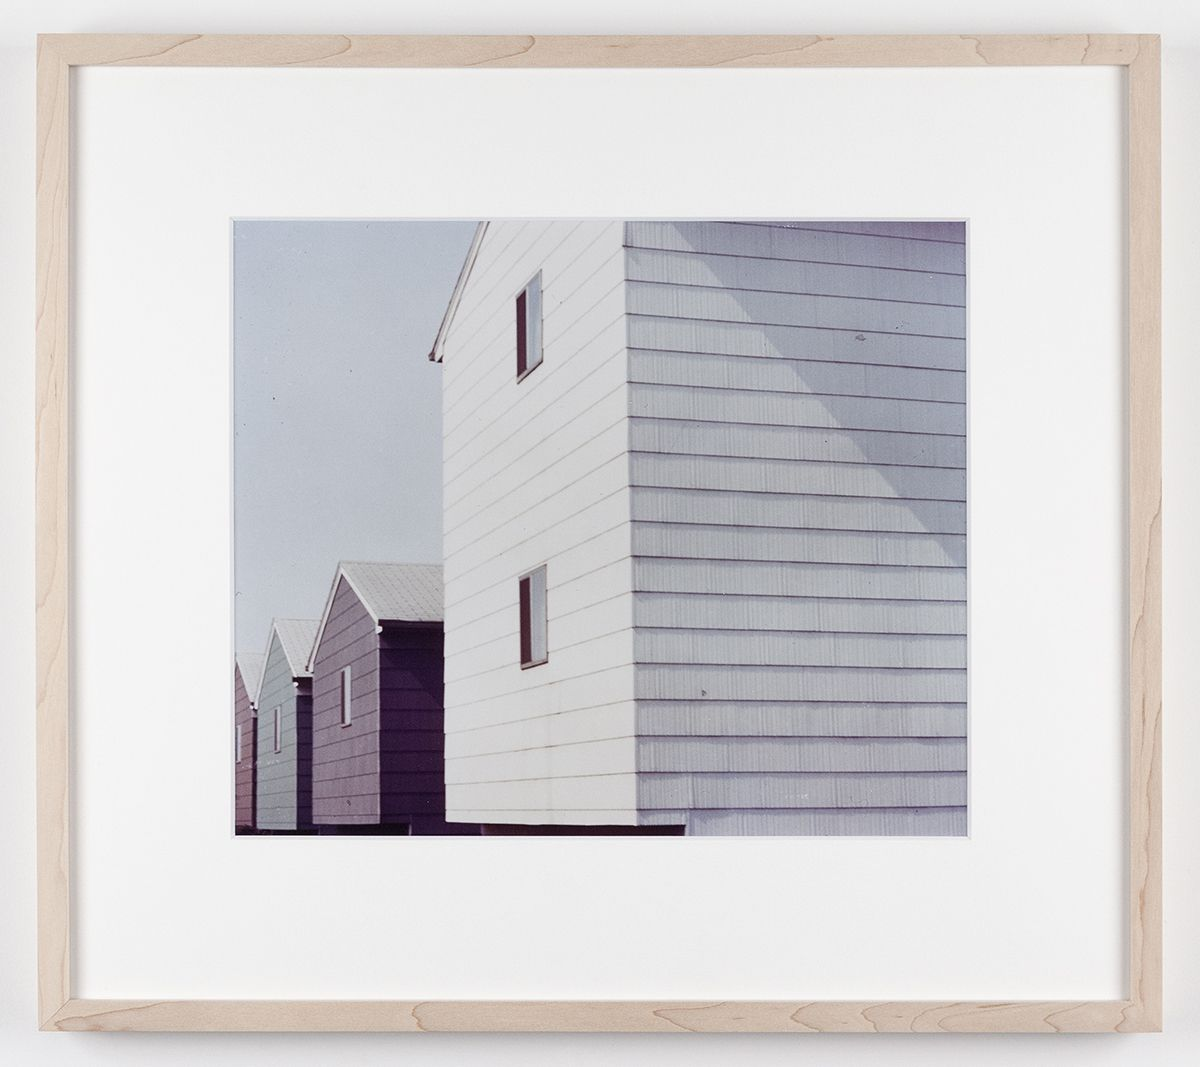 Dan Graham Tract Houses, Bayonne, New Jersey, 1966 C-print Framed: 17 1/4 x 19 1/4 inches (43.8 x 48.9 cm)